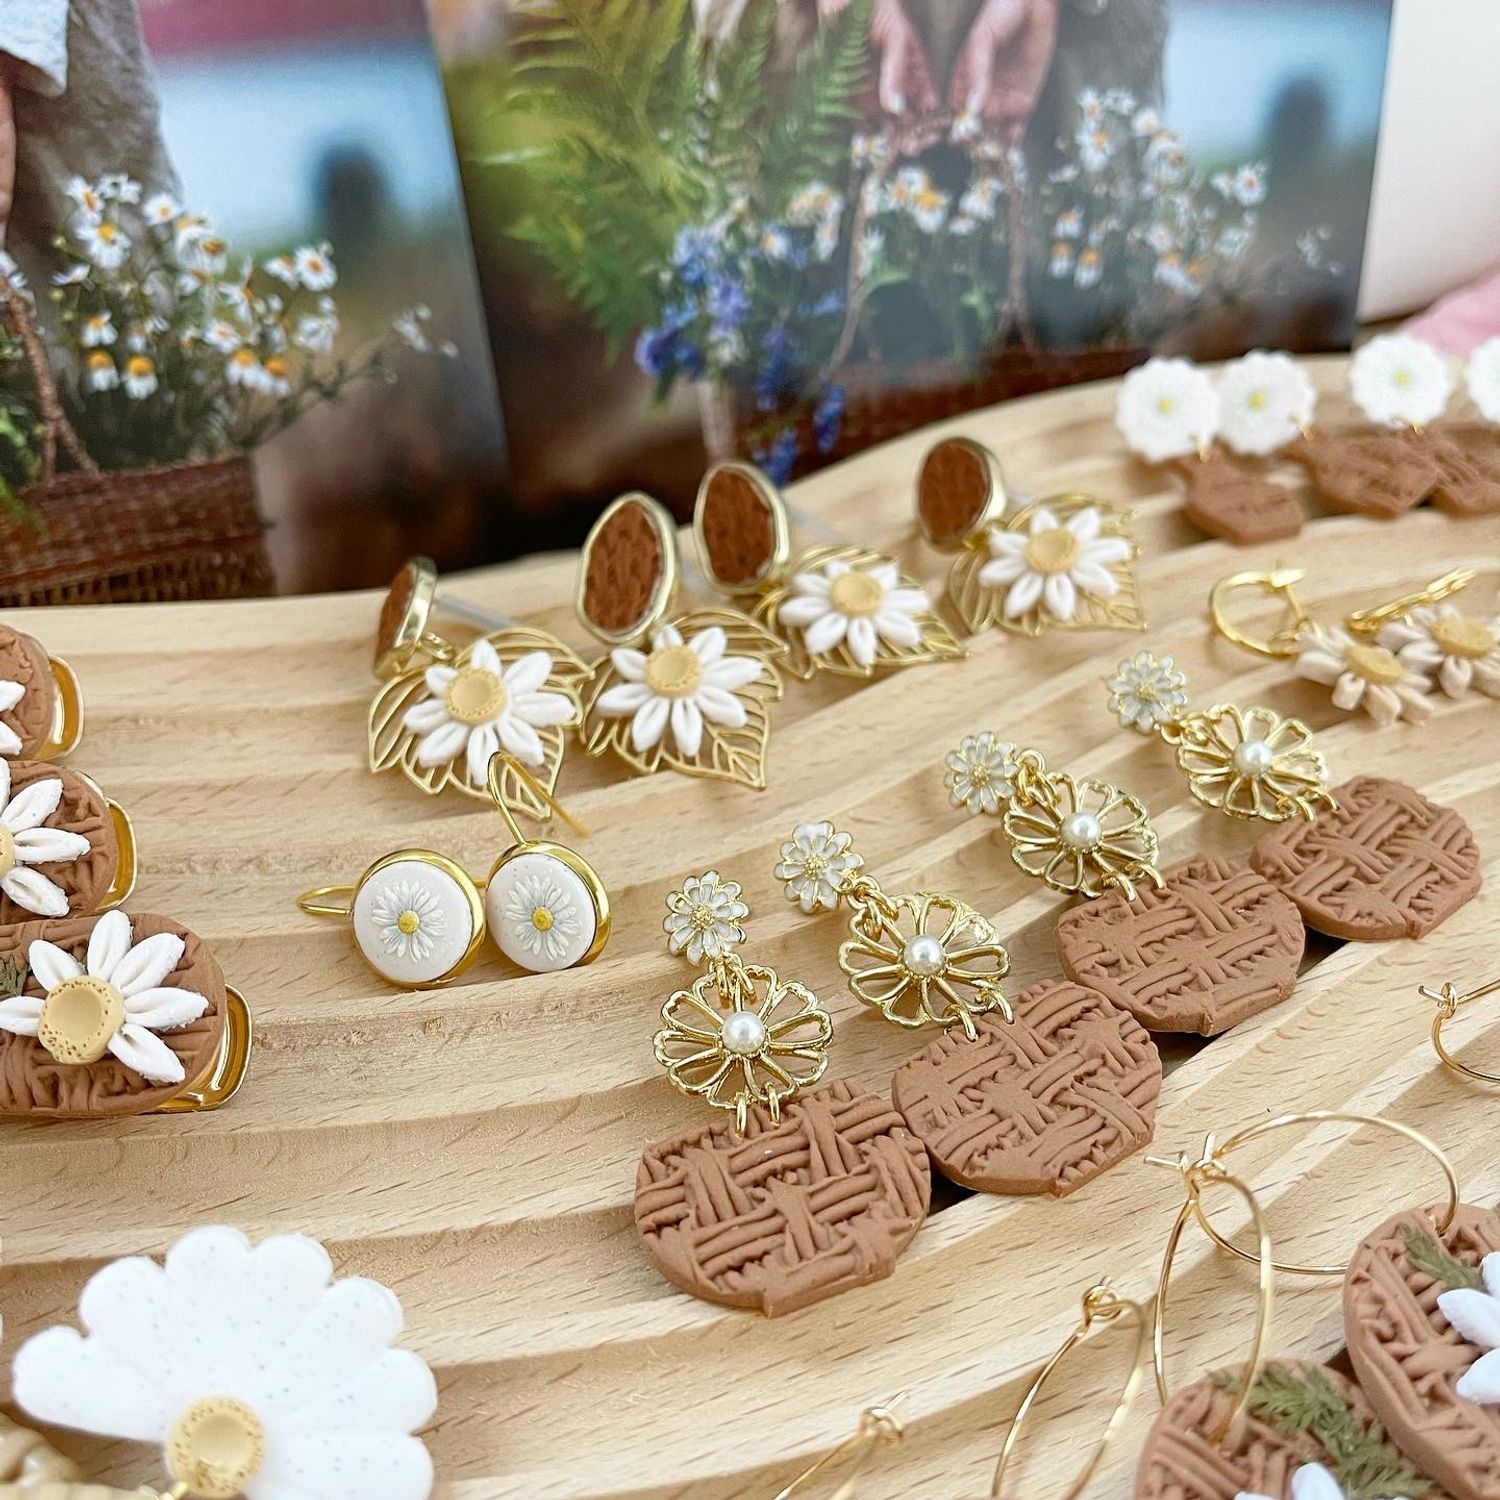 Diary of a Miniature Enthusiast | Basket of Daisies Collection